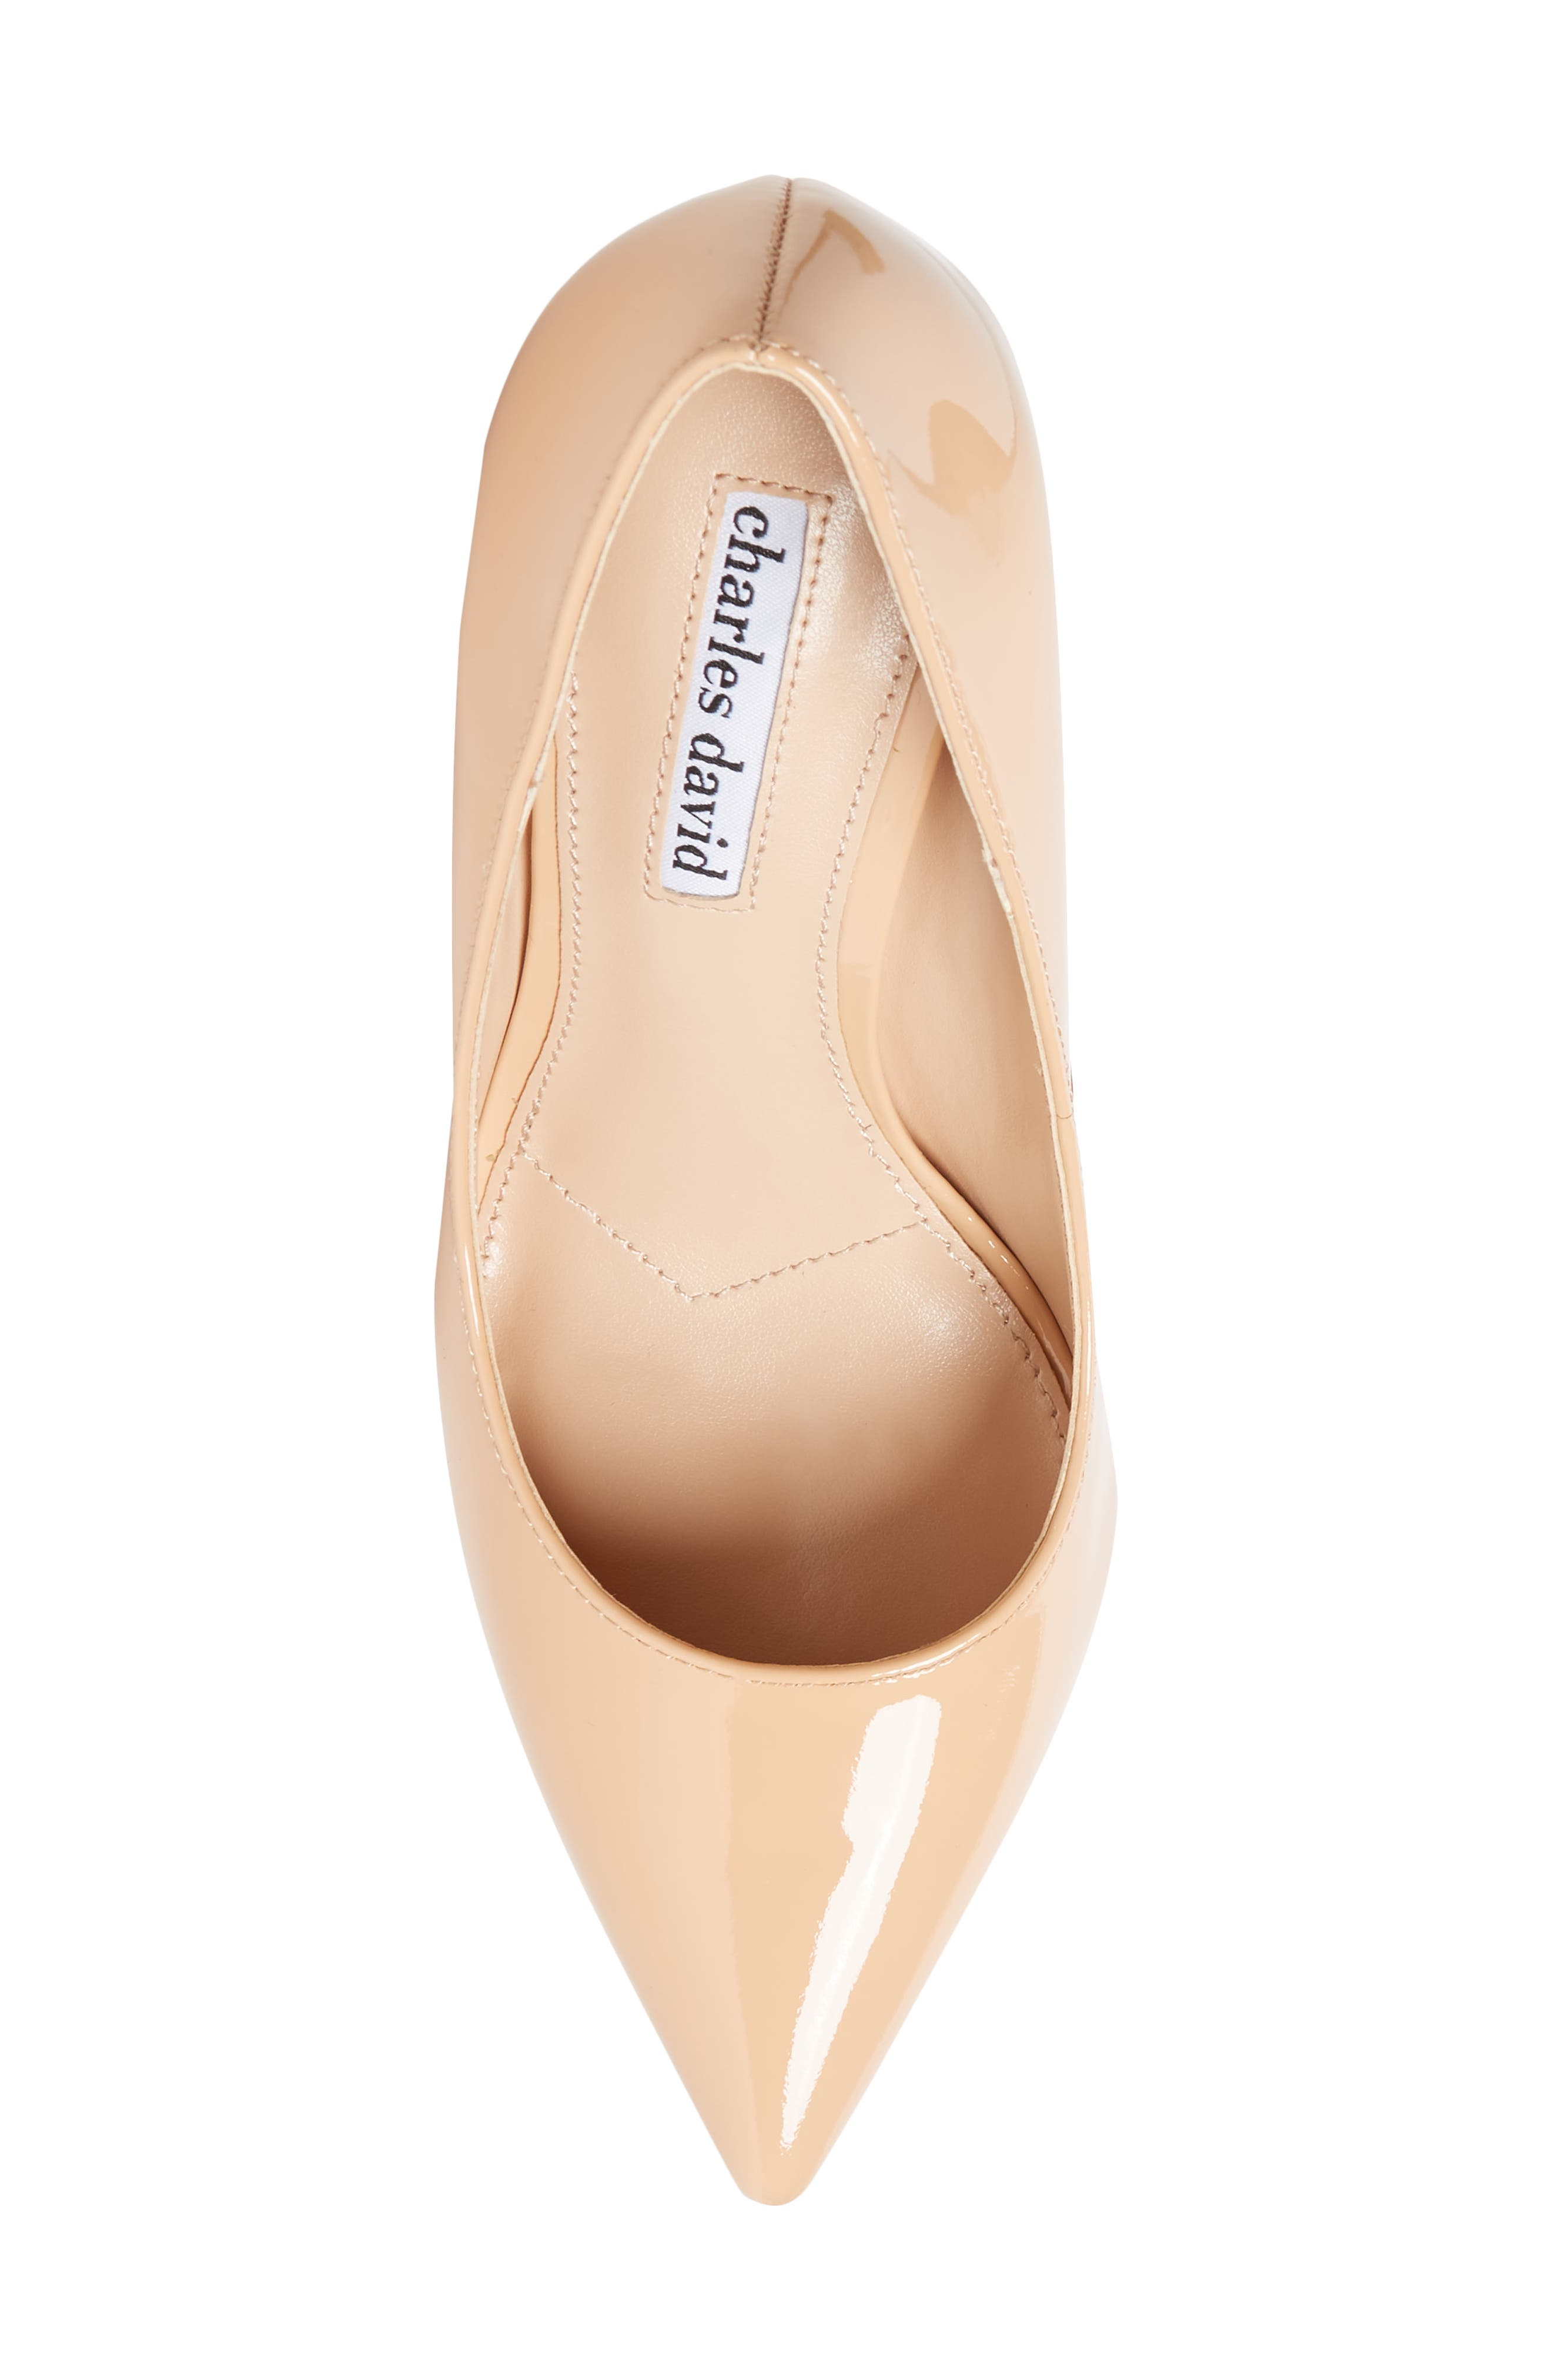 Calessi Pointy Toe Pump,                             Alternate thumbnail 5, color,                             PETAL PATENT LEATHER